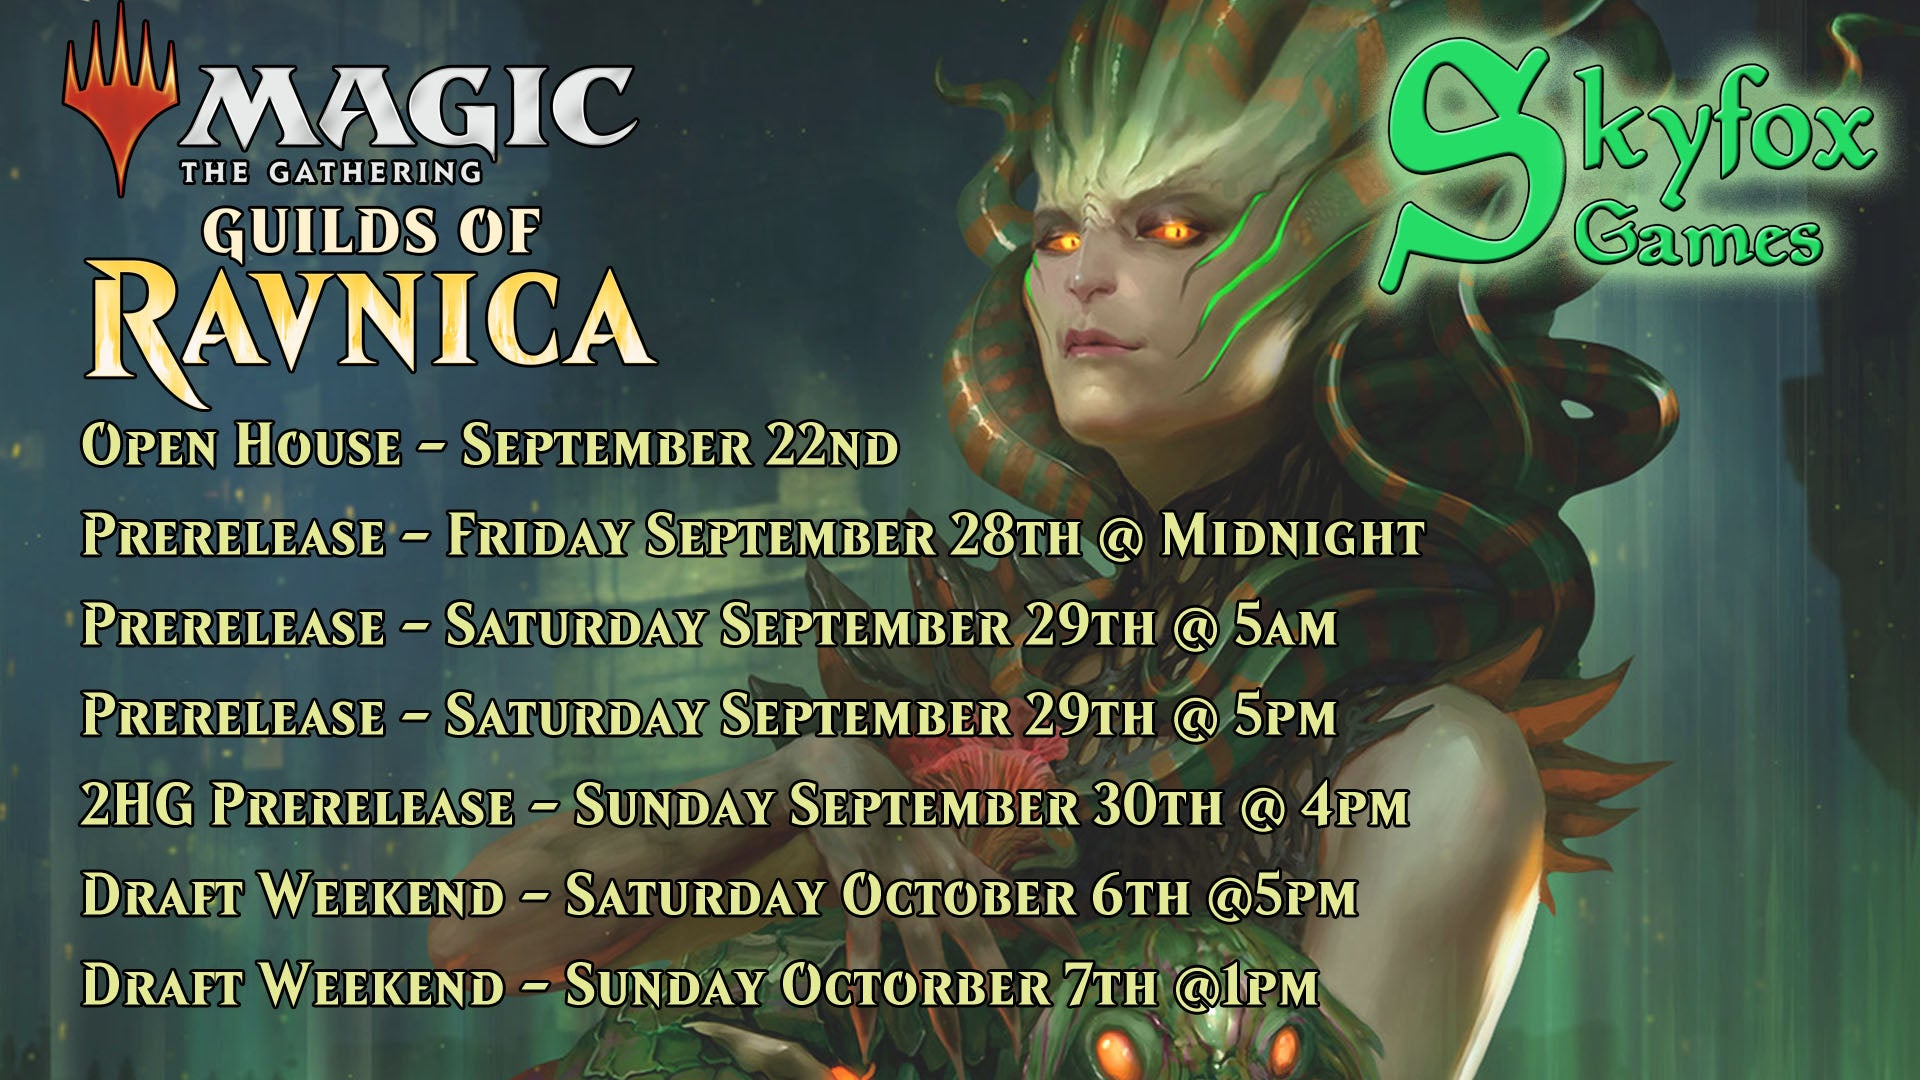 MtG: Guilds of Ravnica Prerelease - 4pm Sunday 2HG Preregistration | SKYFOX GAMES